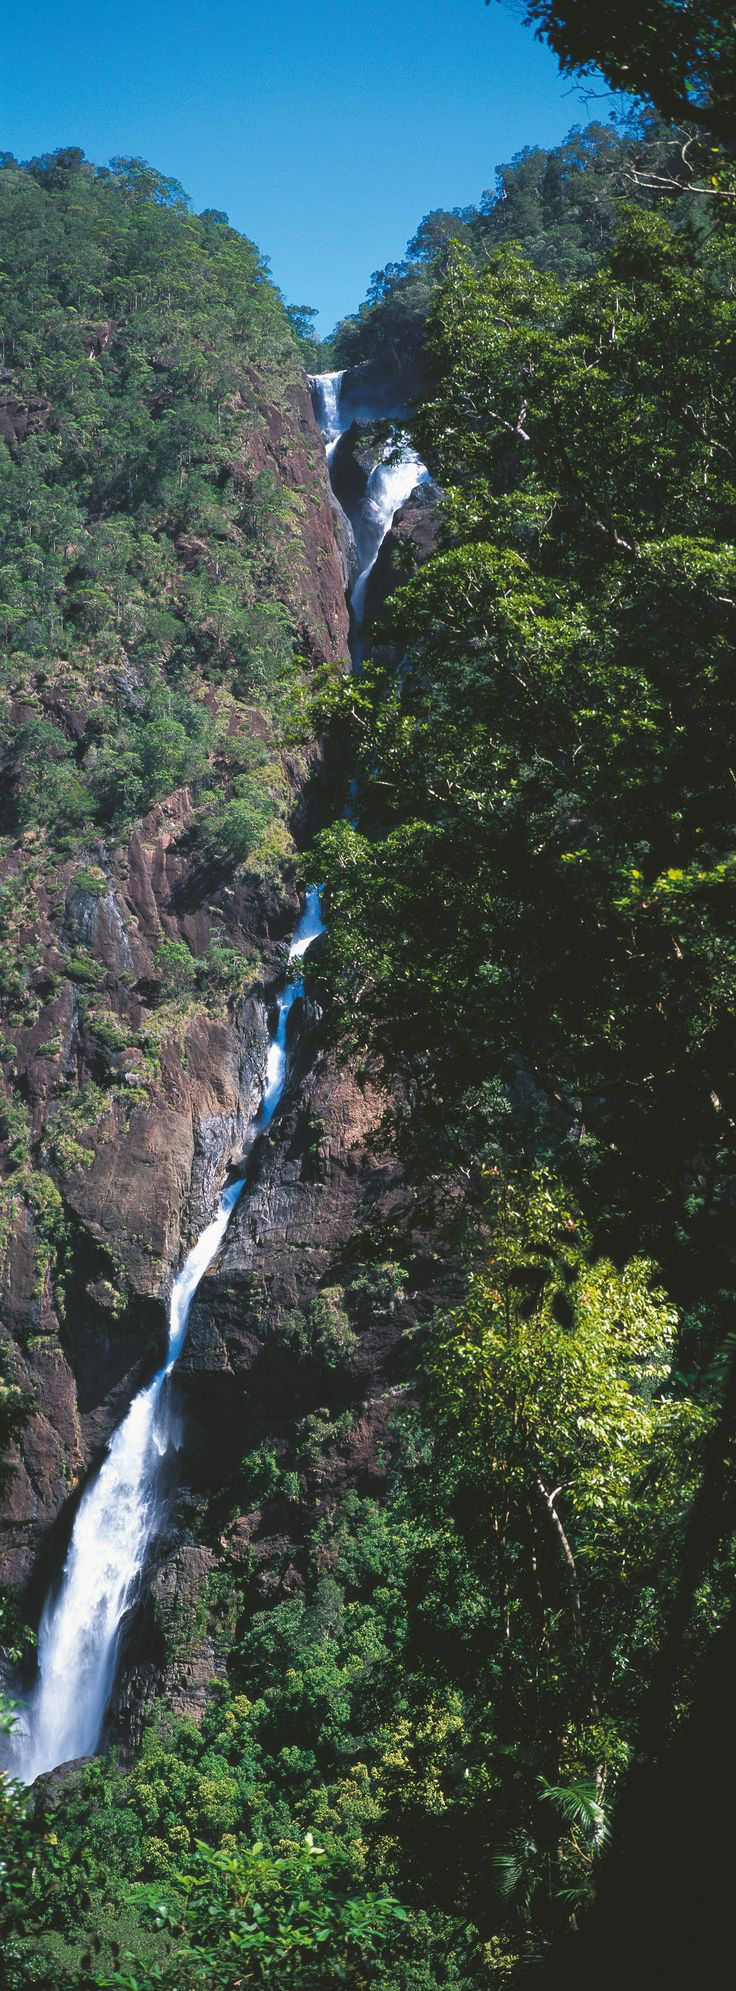 #Elizabeth Grant Falls, Misty Mountains in Tully, Tropical North Queensland. The best place in Australia to go white water rafting! #nationalparks #tropicalnorth     -   http://vacationtravelogue.com For Hotels-Flights Bookings Globally Save Up To 80% On Travel   - http://wp.me/p291tj-5x